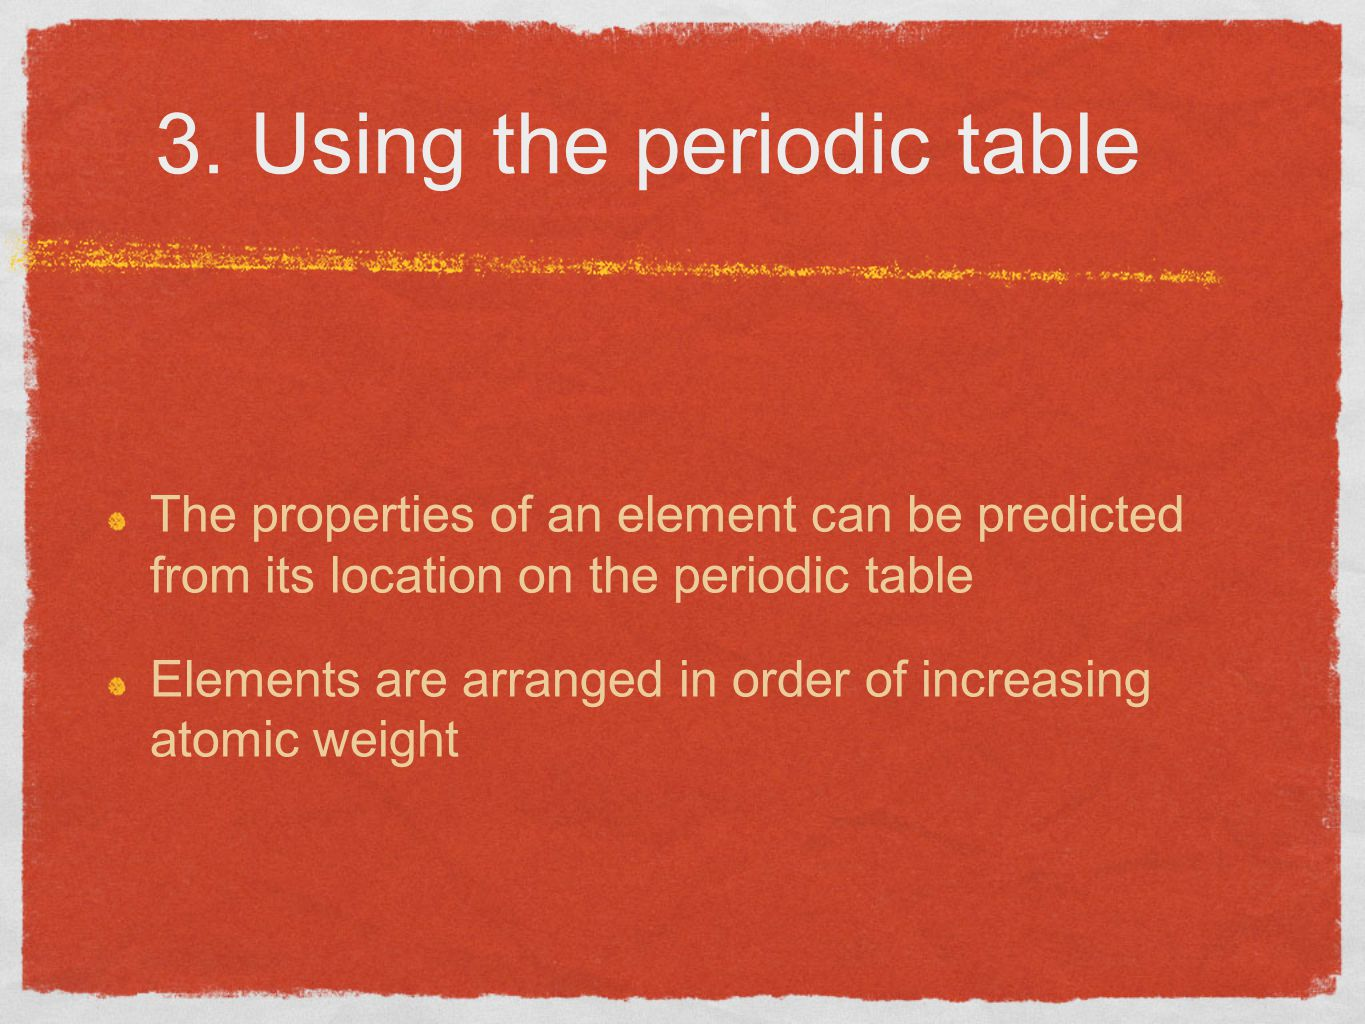 Elements and the periodic table ppt video online download 23 3 using the periodic table gamestrikefo Images